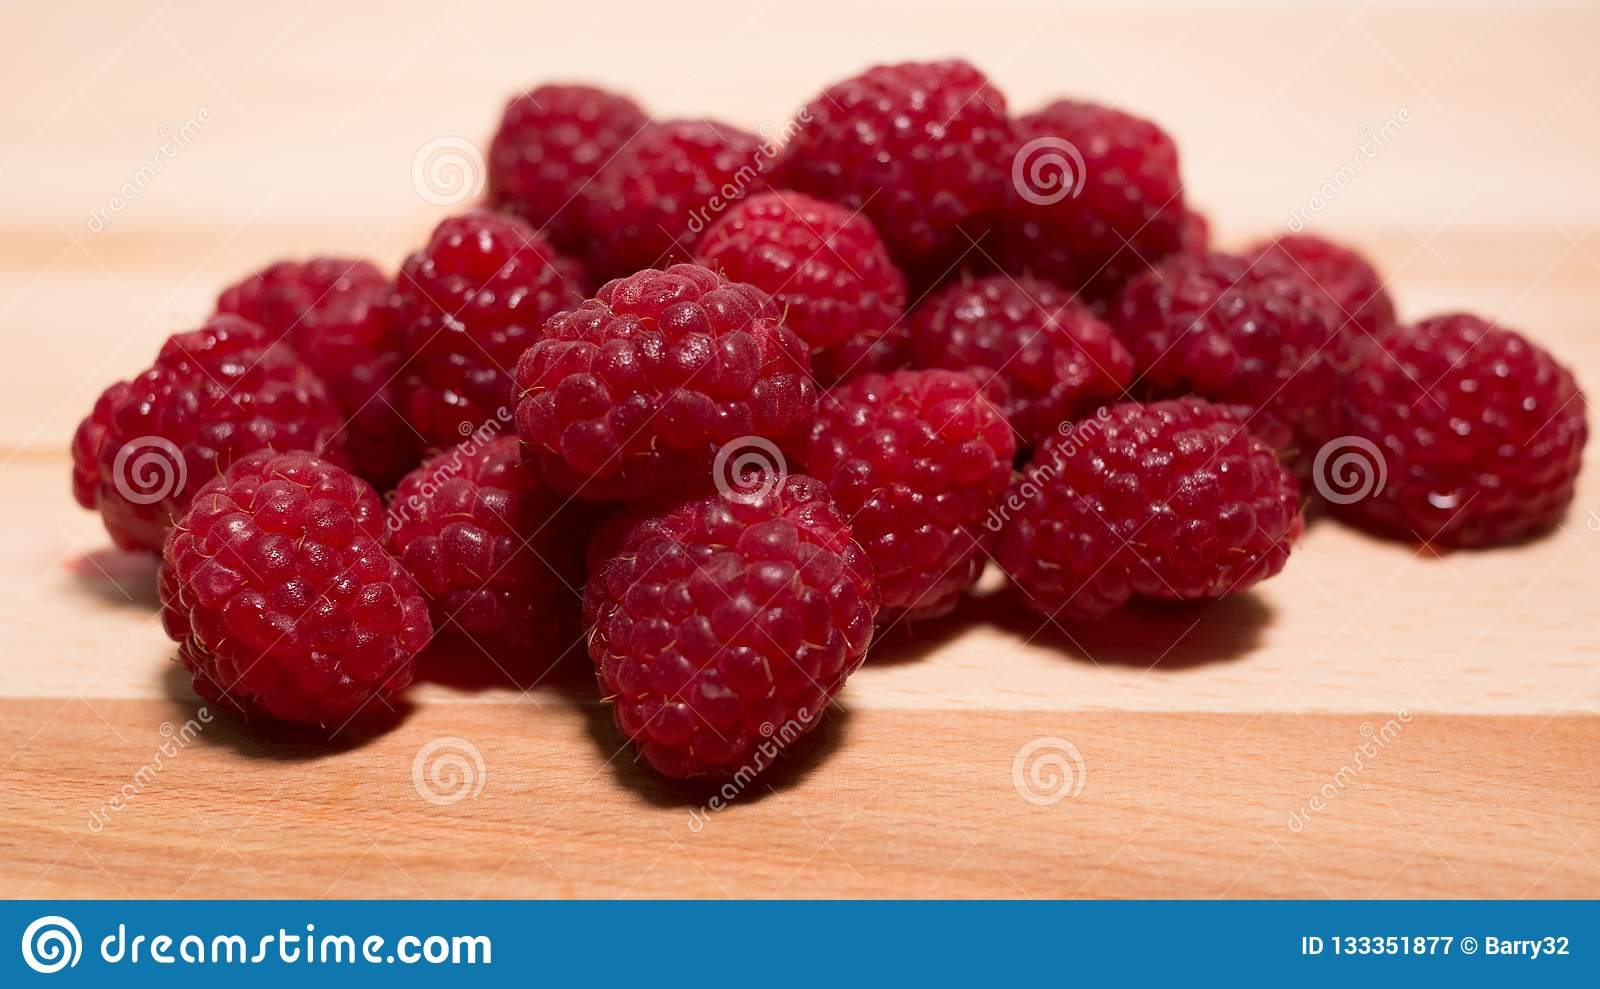 Pile of raspberries on a natural wooden background.